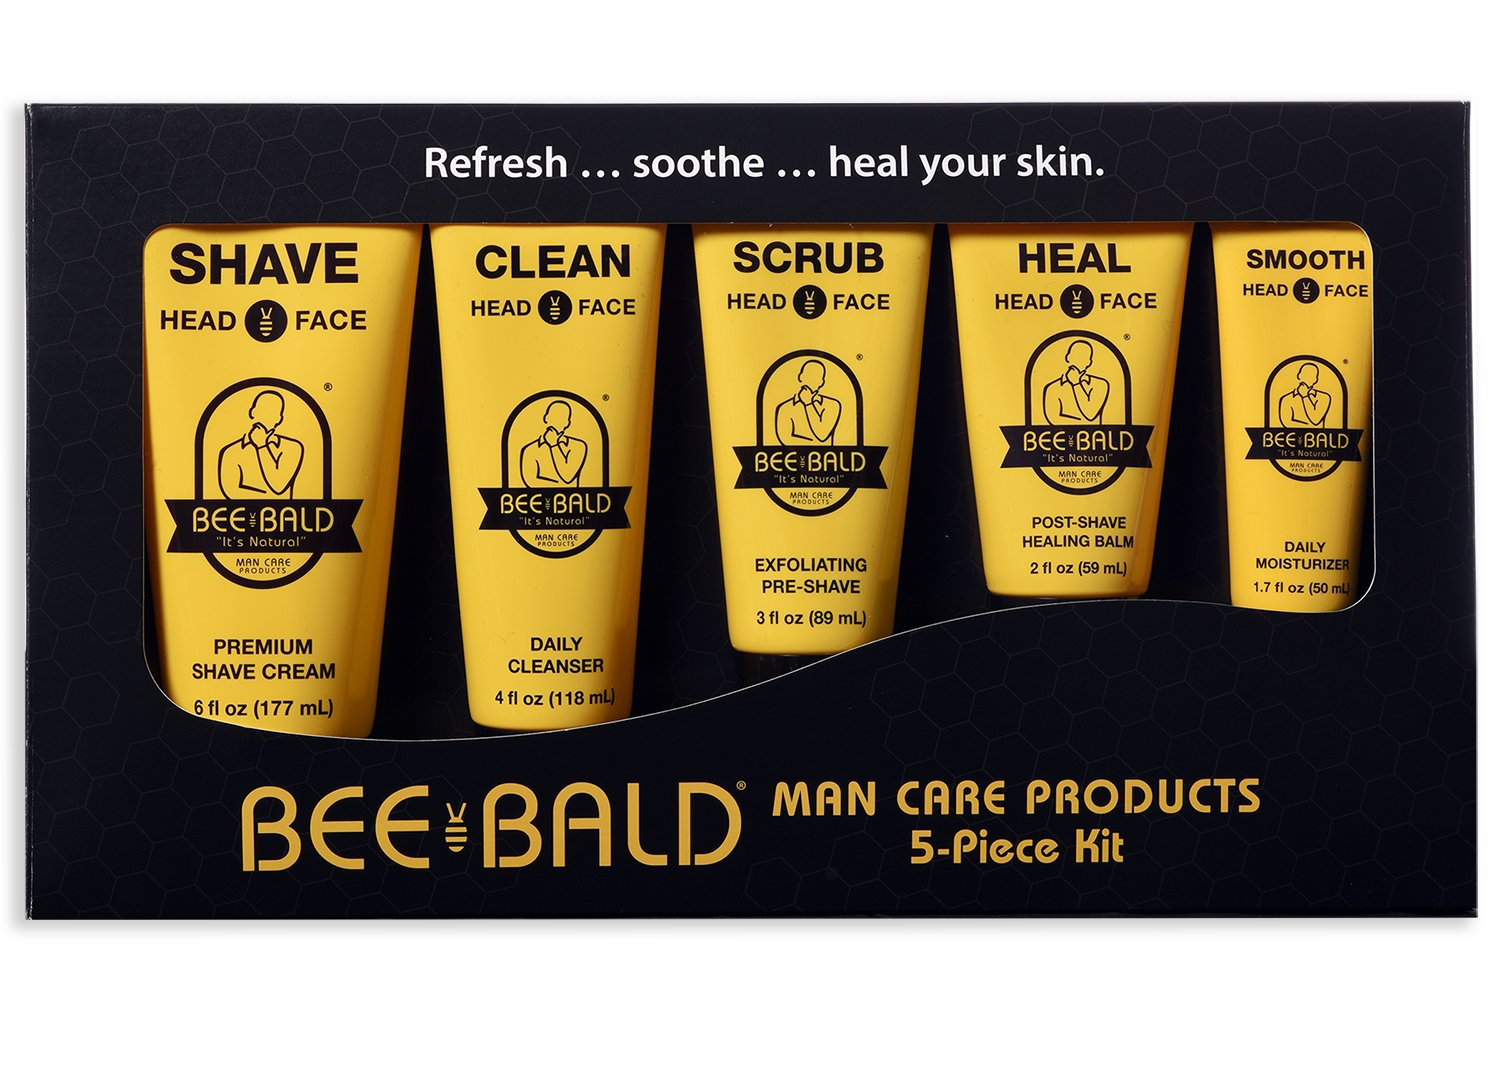 Bald head products come in a variety of forms and consistencies. Shaving gels help you obtain a smooth finish on your head. Other types of shaving products like shaving cream and shaving powder, can be mixed with water for application.